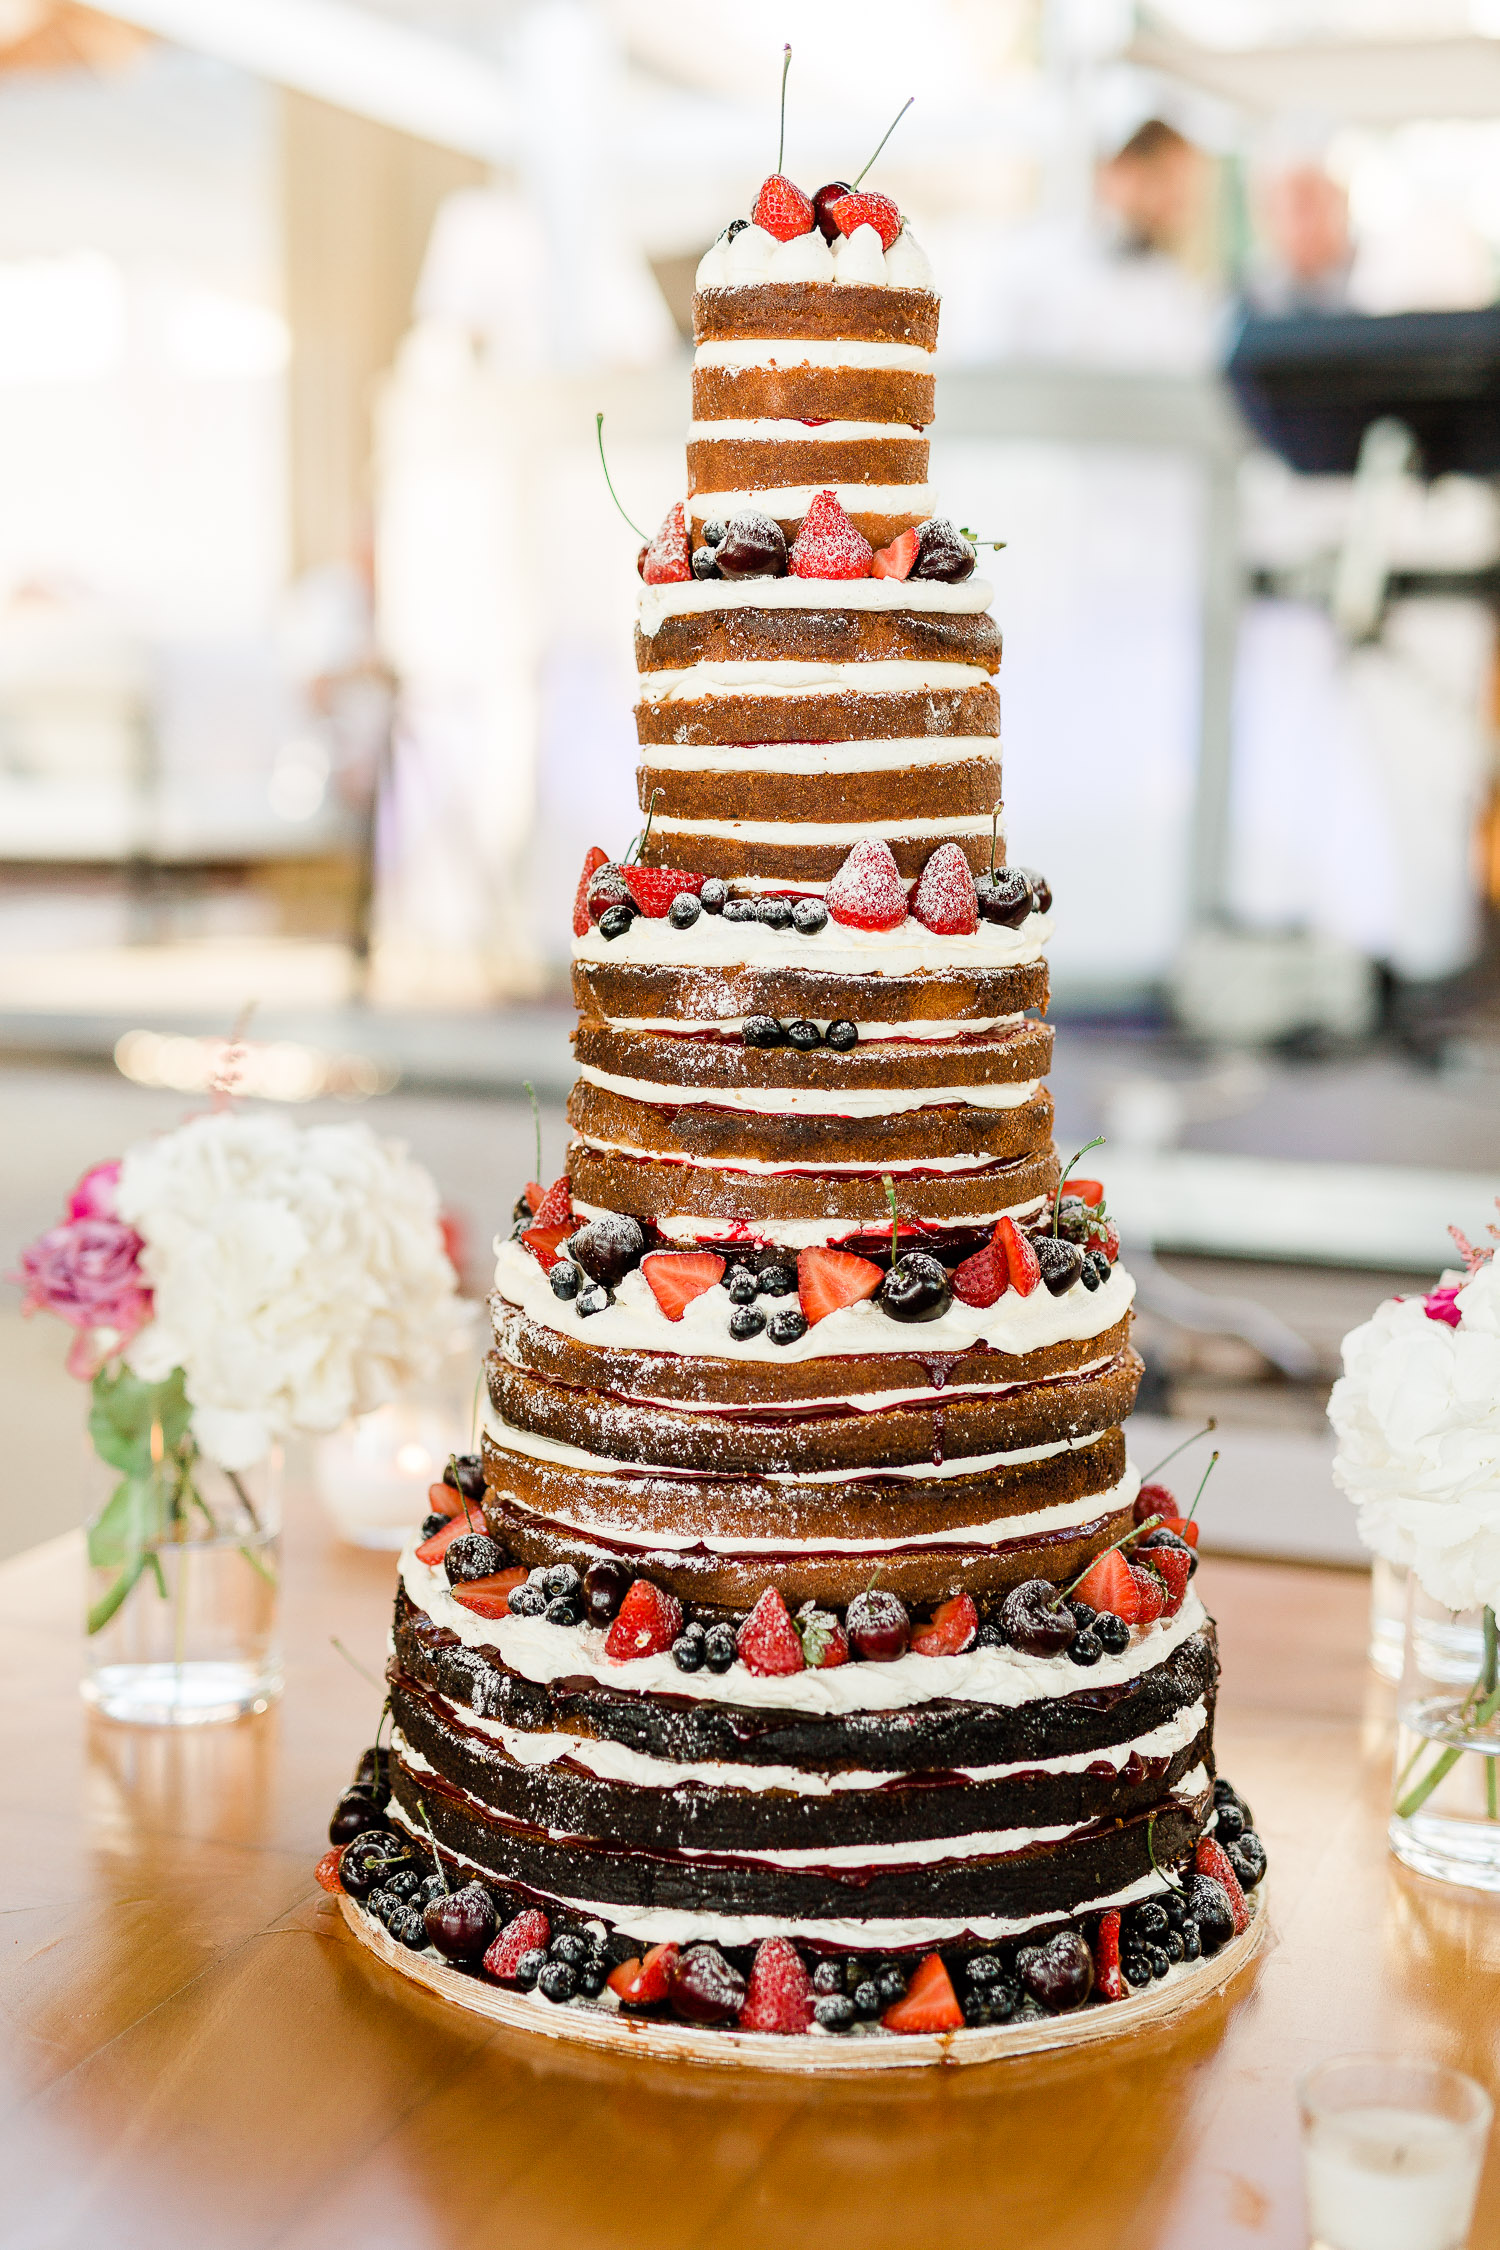 wedding naked cake with strawberries, cherries and blueberries